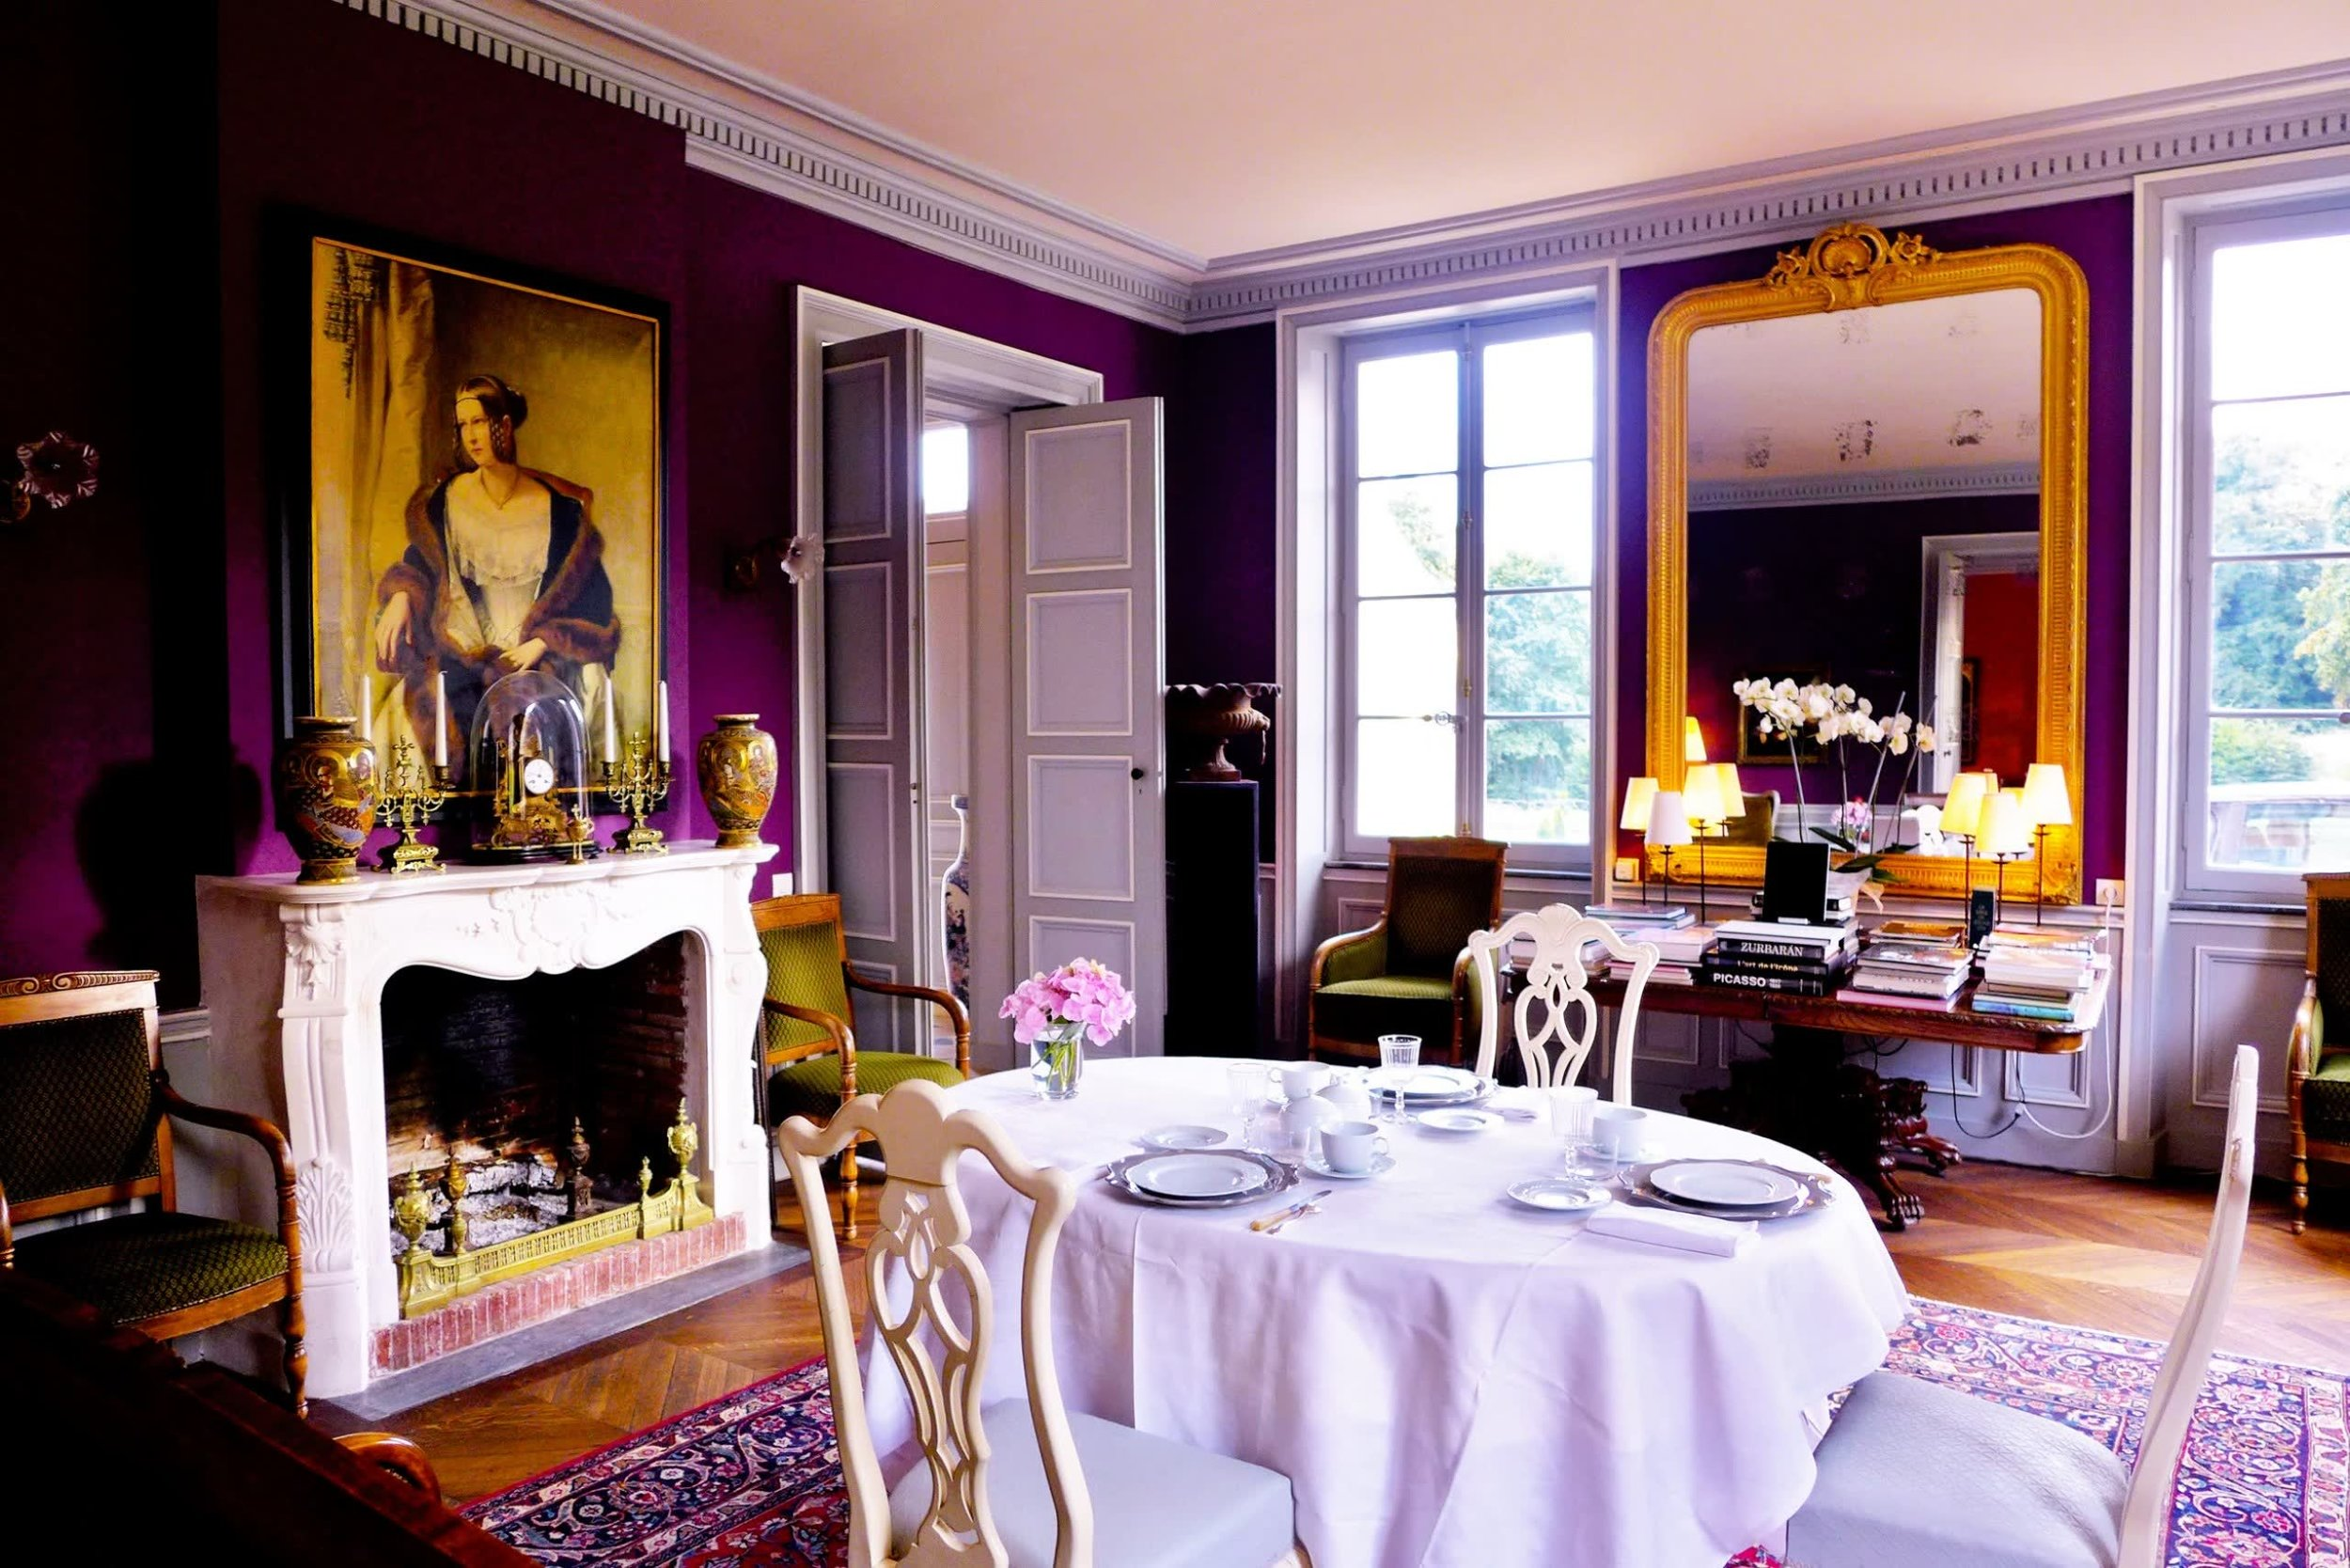 Chateau de la Pommeraye - charming boutique hotel chateau b&b spa normandy calvados Living room 2(1).jpg